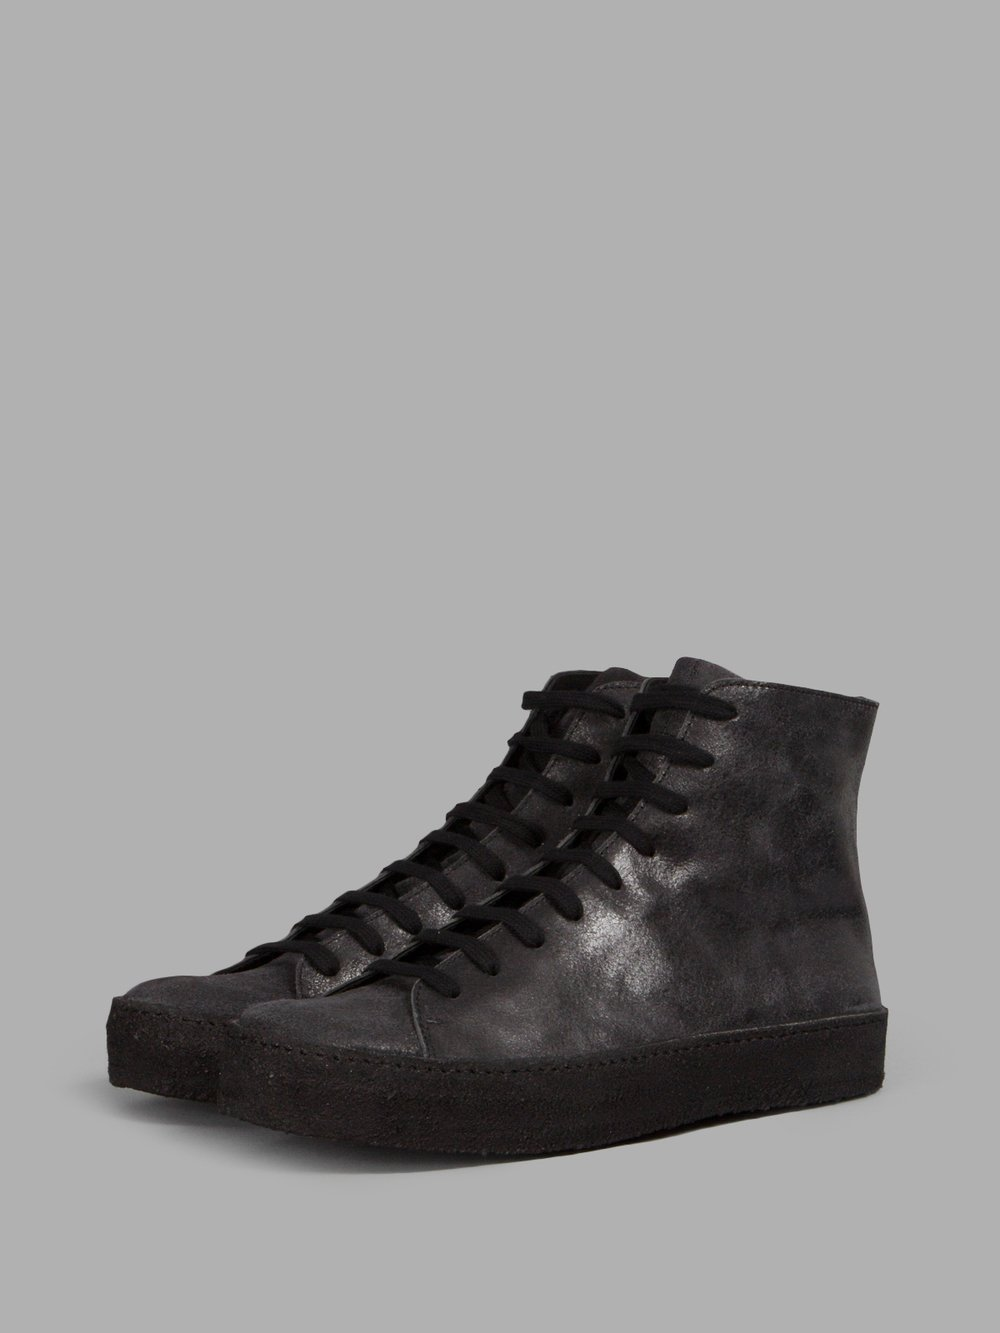 FOOTWEAR - High-tops & sneakers MD75 yPQ6a7TH0